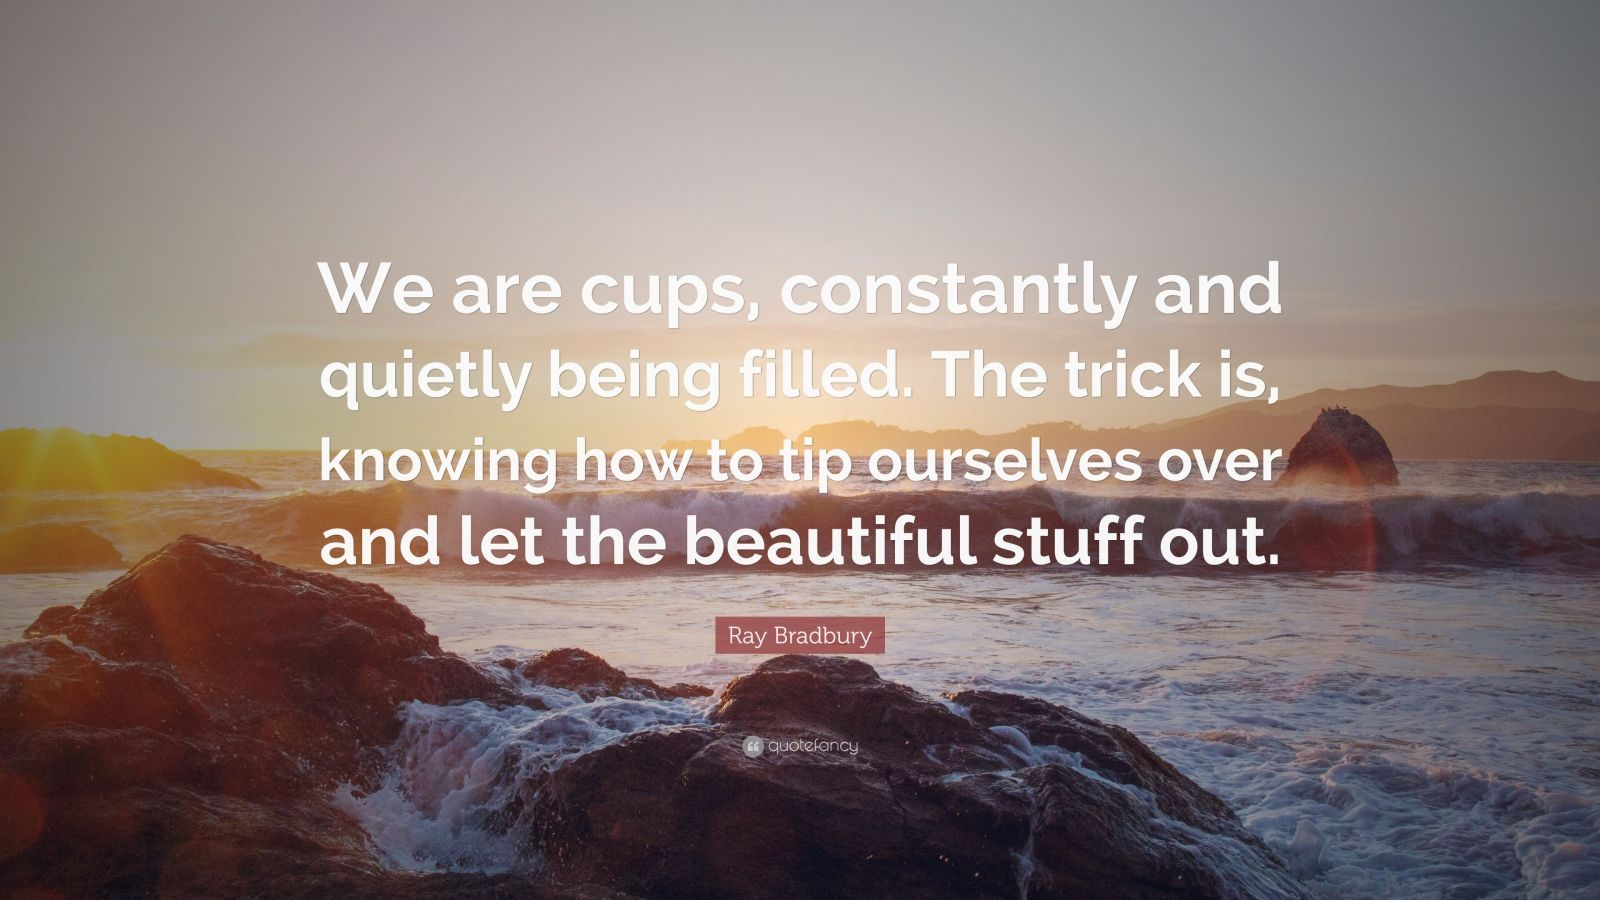 """Ray Bradbury Quote: """"We are cups, constantly and quietly being filled. The trick is, knowing how to tip ourselves over and let the beautiful stuff out."""""""